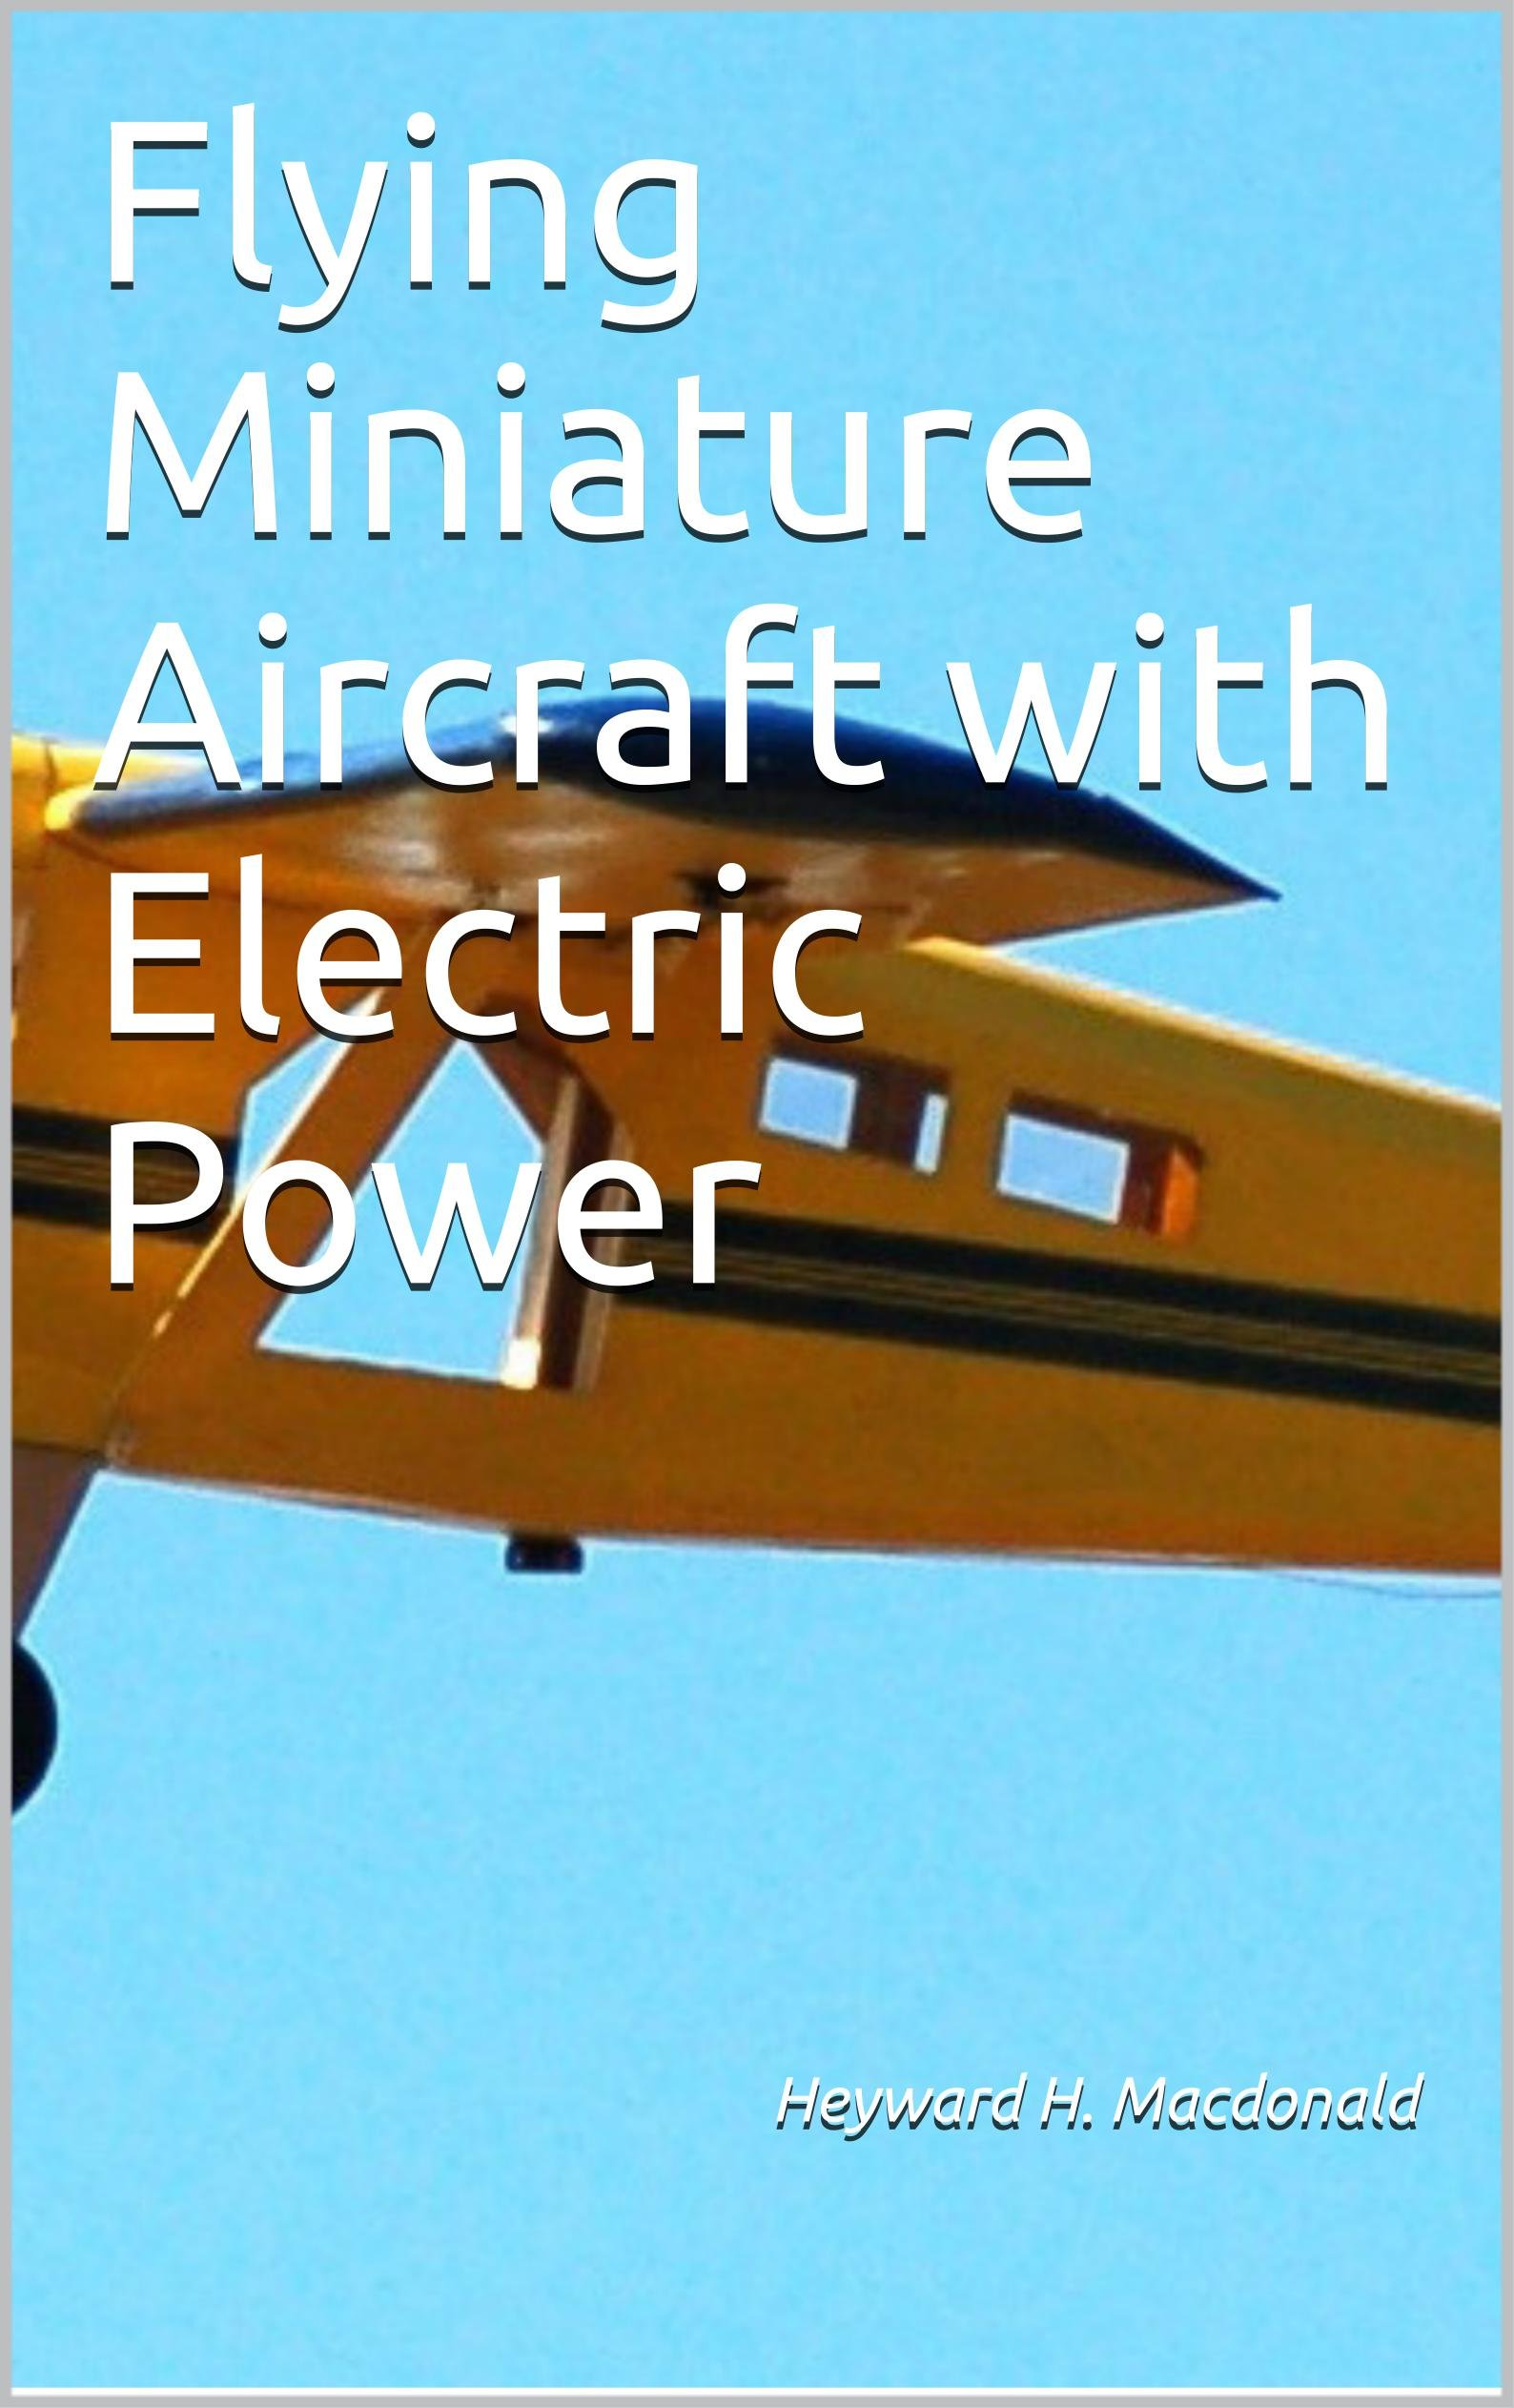 Image OfFlying Miniature Aircraft With Electric Power (English Edition)